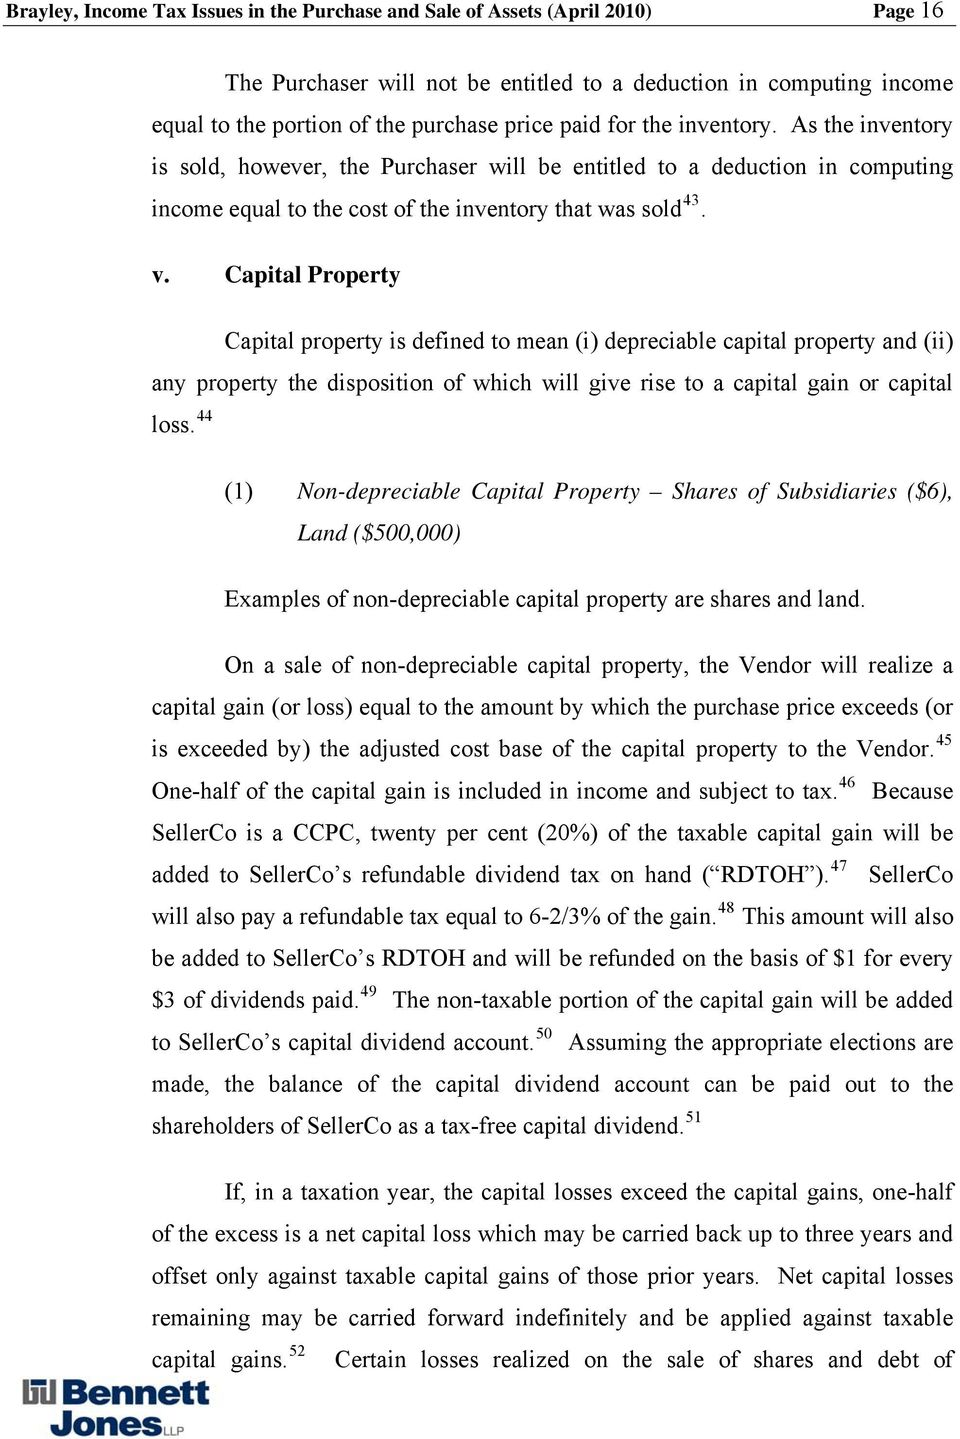 Capital Property Capital property is defined to mean (i) depreciable capital property and (ii) any property the disposition of which will give rise to a capital gain or capital loss.